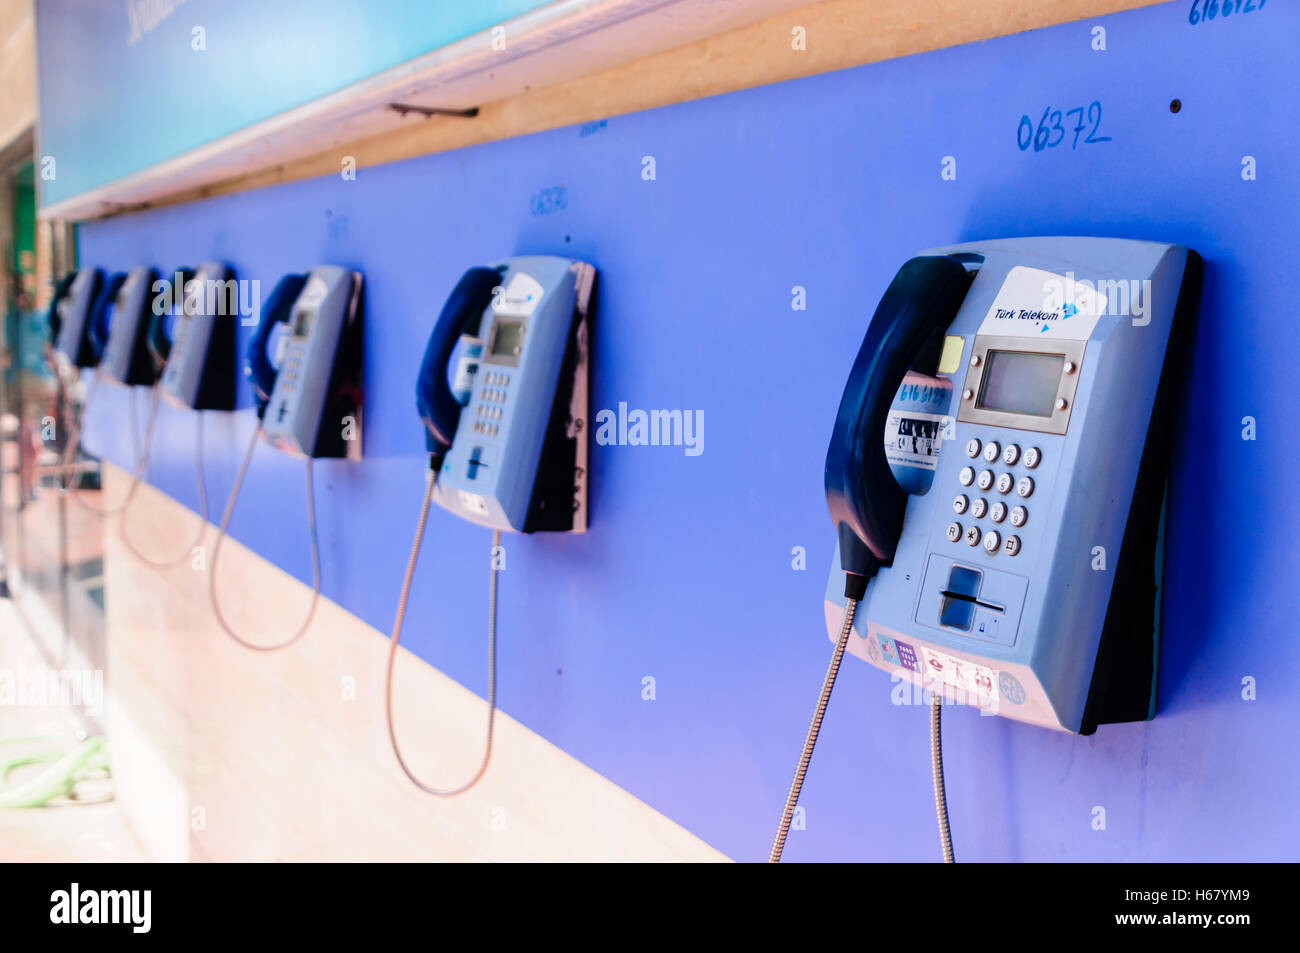 Row of blue Turk Telecom public telephones on a wall - Stock Image